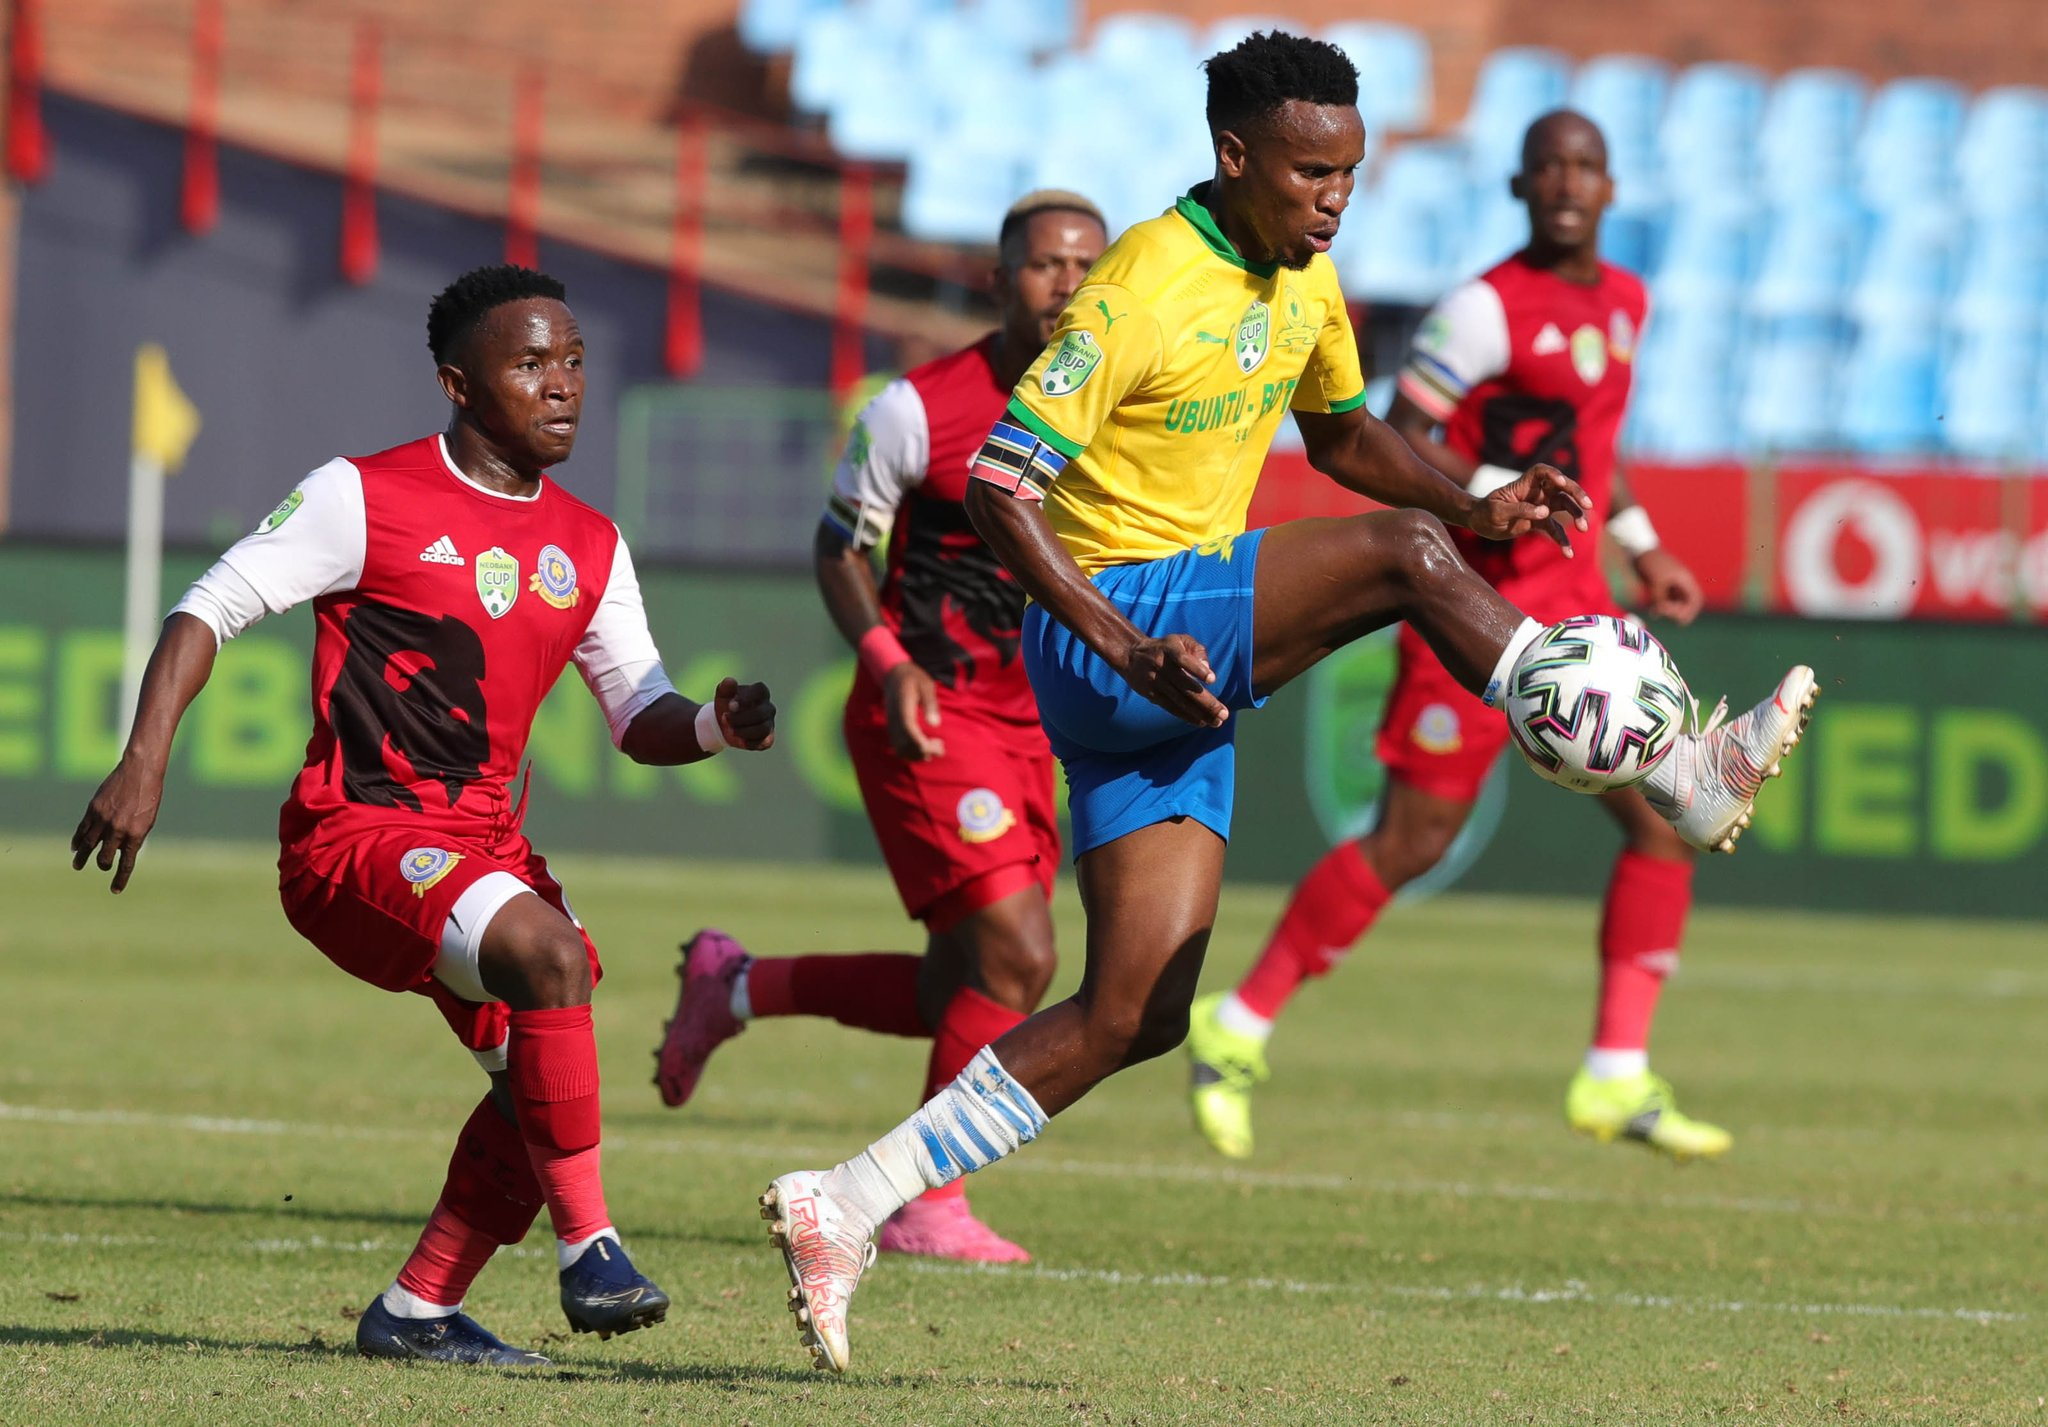 TTM STUN SUNDOWNS TO REACH NEDBANK CUP FINAL